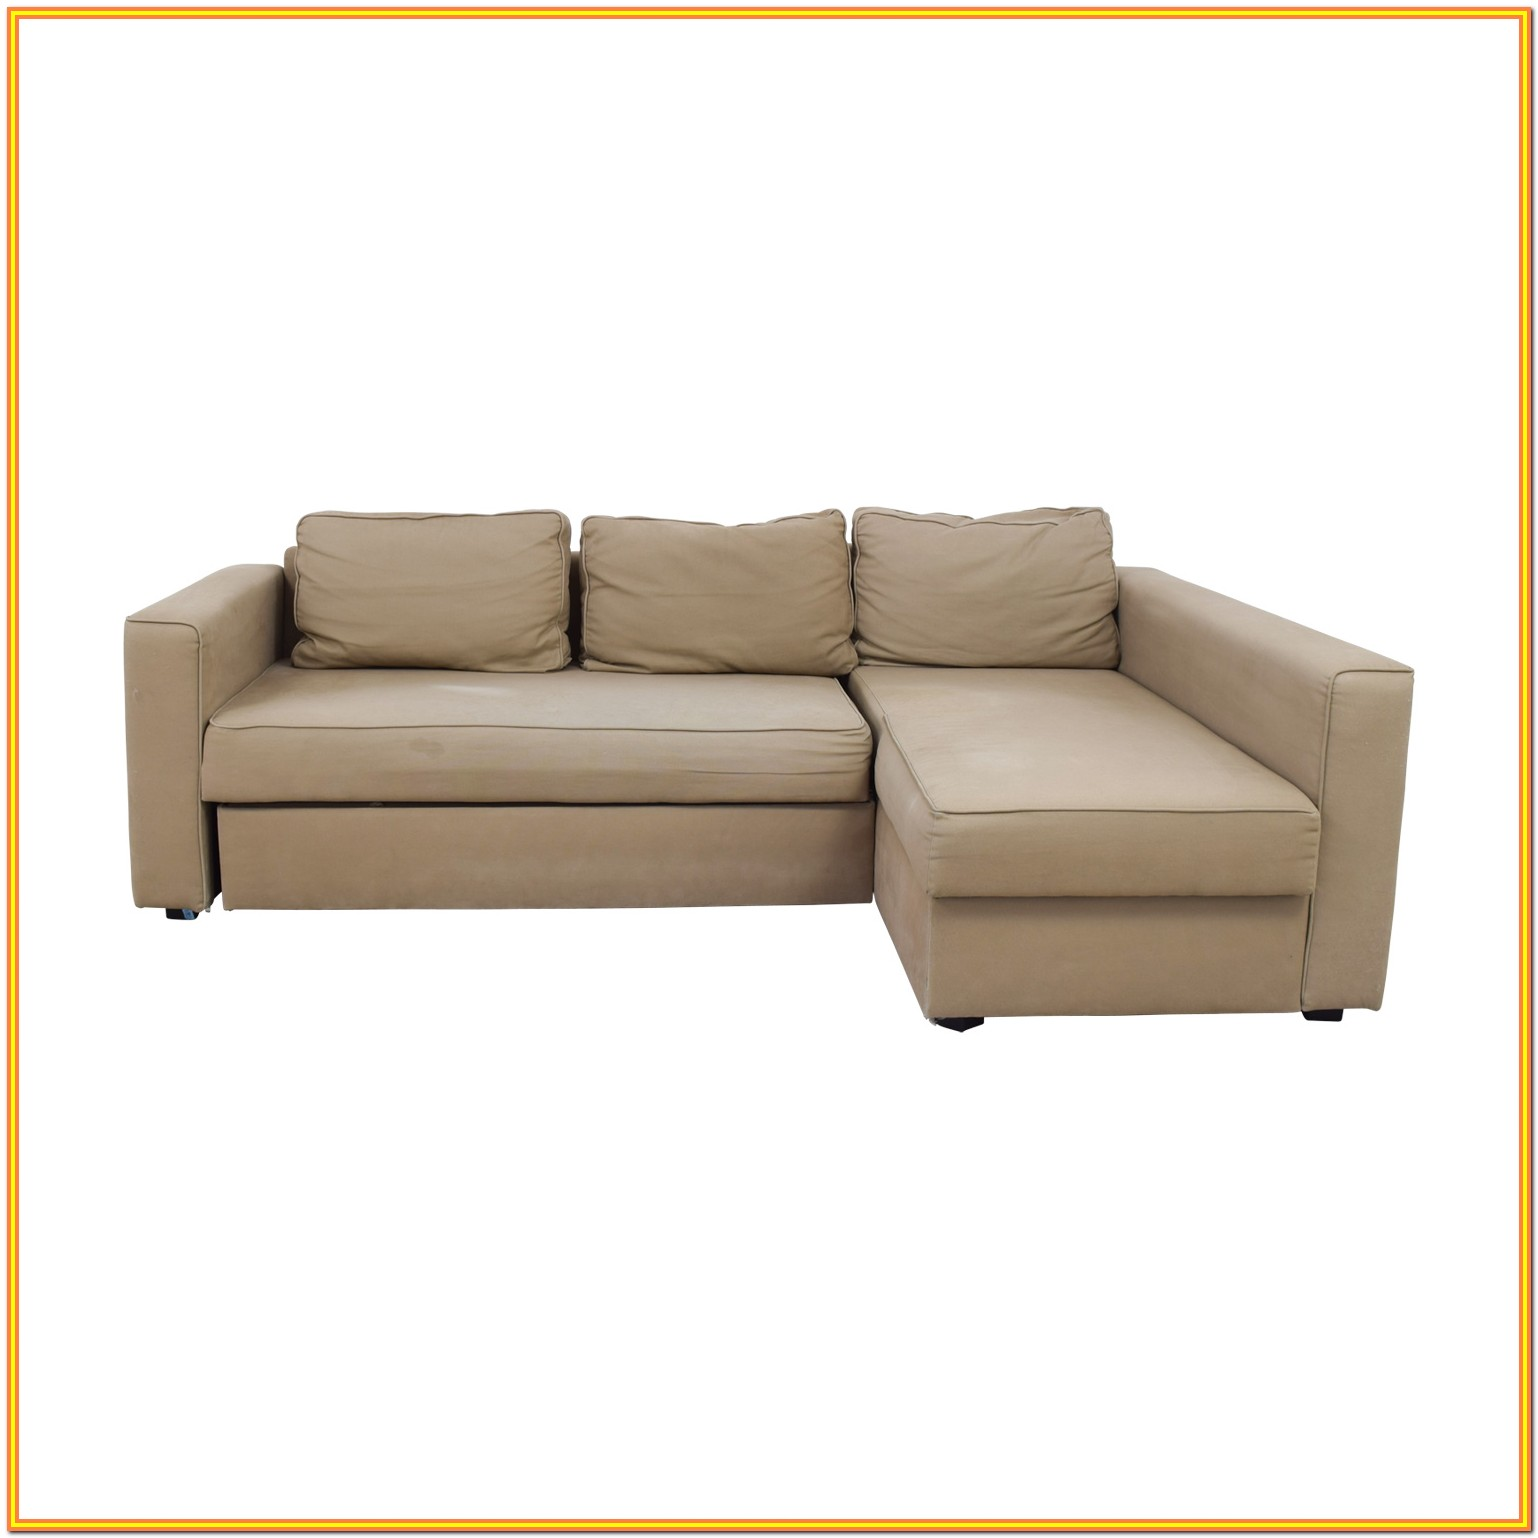 Sectional Sofa Bed With Storage Ikea